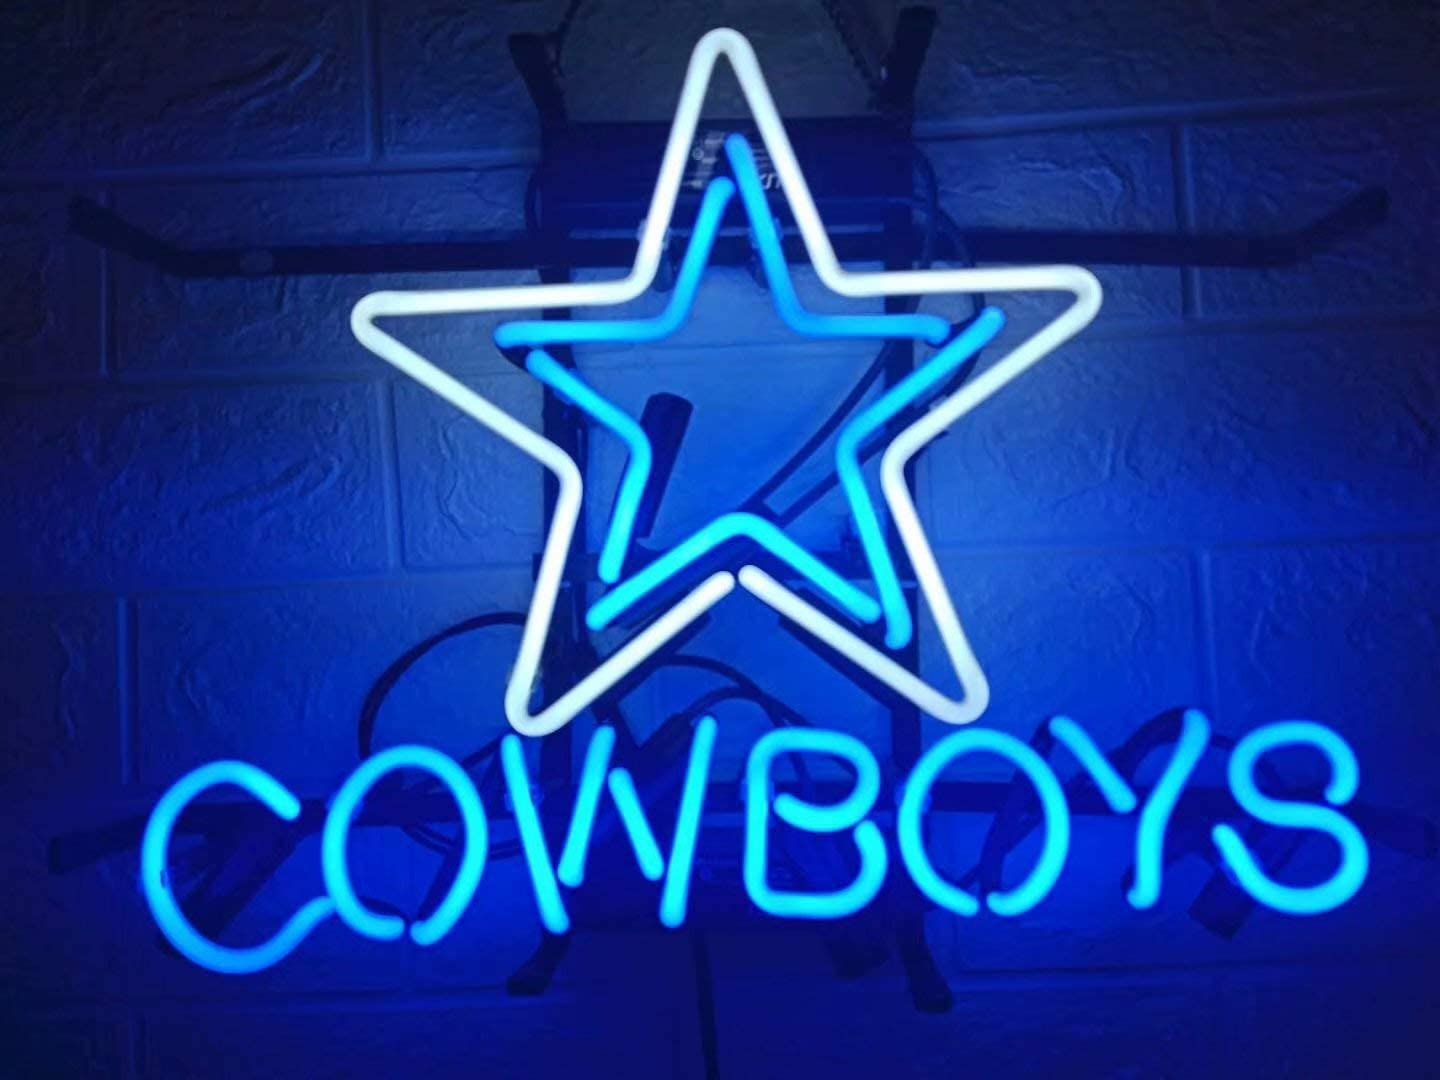 LDGJ Neon Signs for Wall Decor Handmade Sign Home Sports League DCS Beer Bar Pub Recreation Room Lights Windows Glass Party